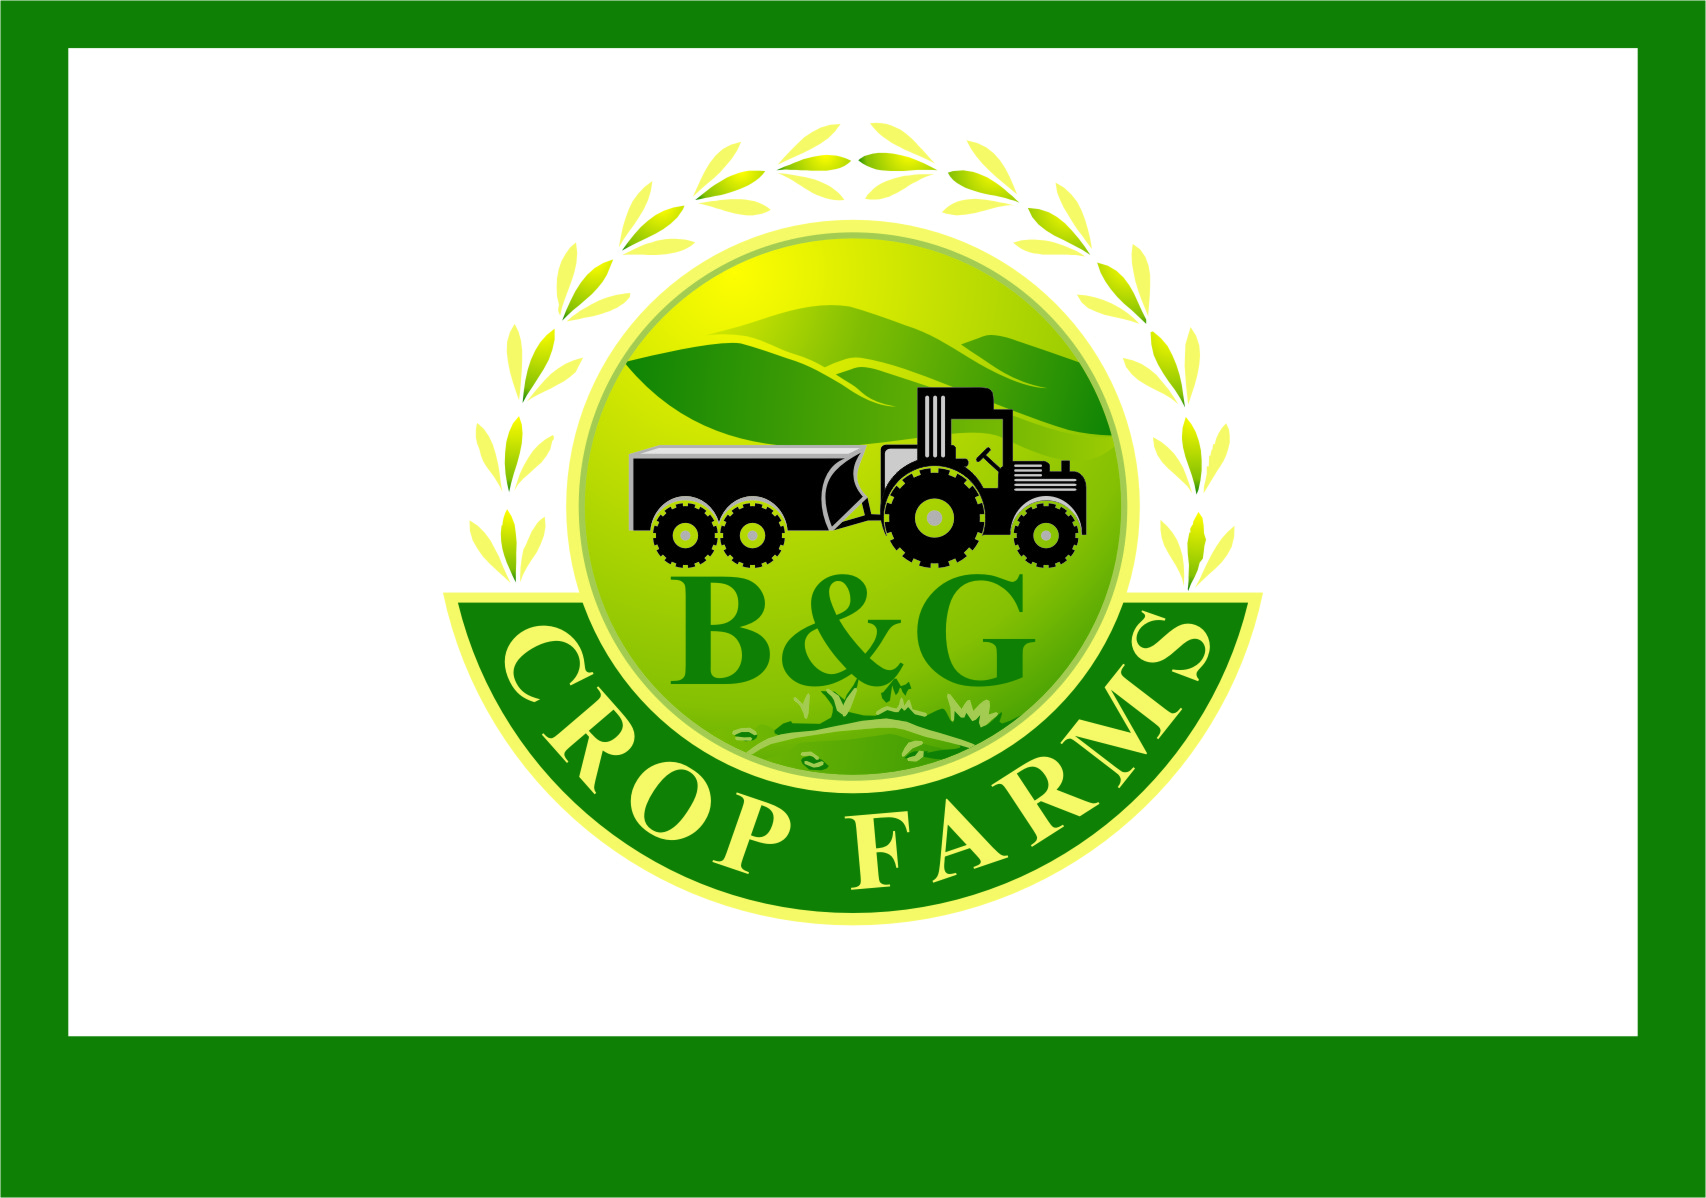 Logo Design by Ngepet_art - Entry No. 74 in the Logo Design Contest Artistic Logo Design for B & G Crop Farms.